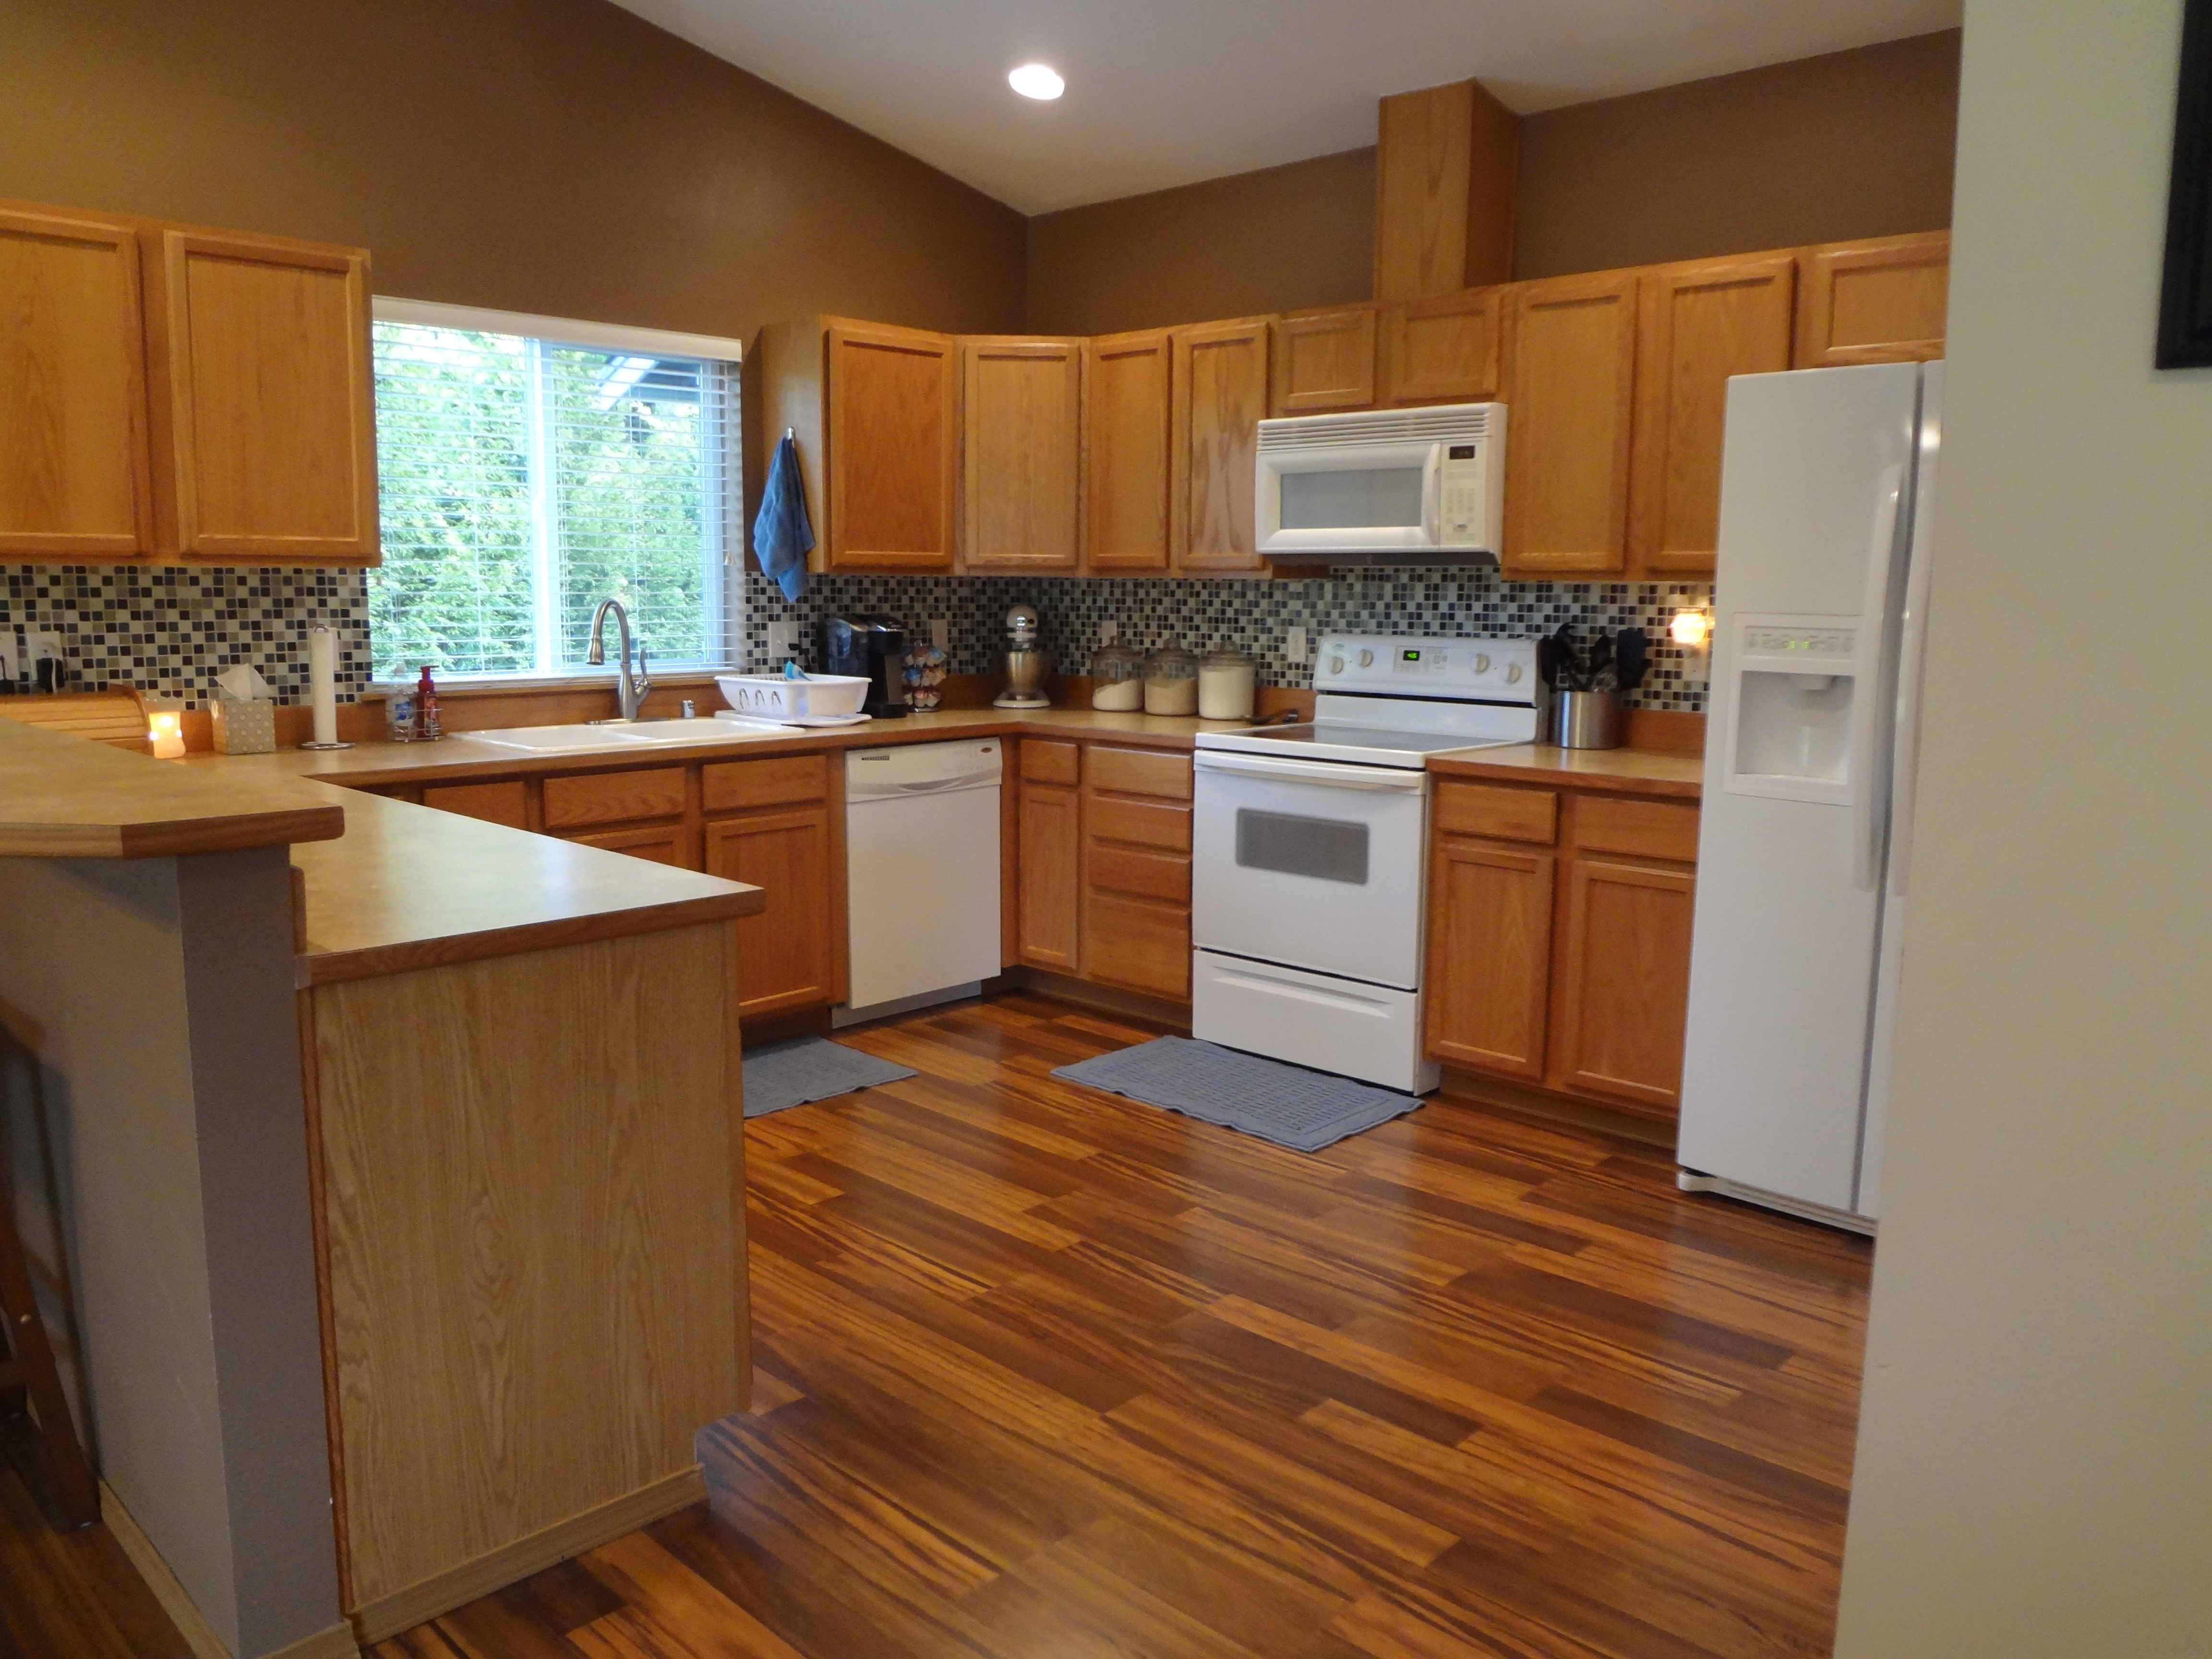 Home Improvement Amy Scott 39 S Thoughts